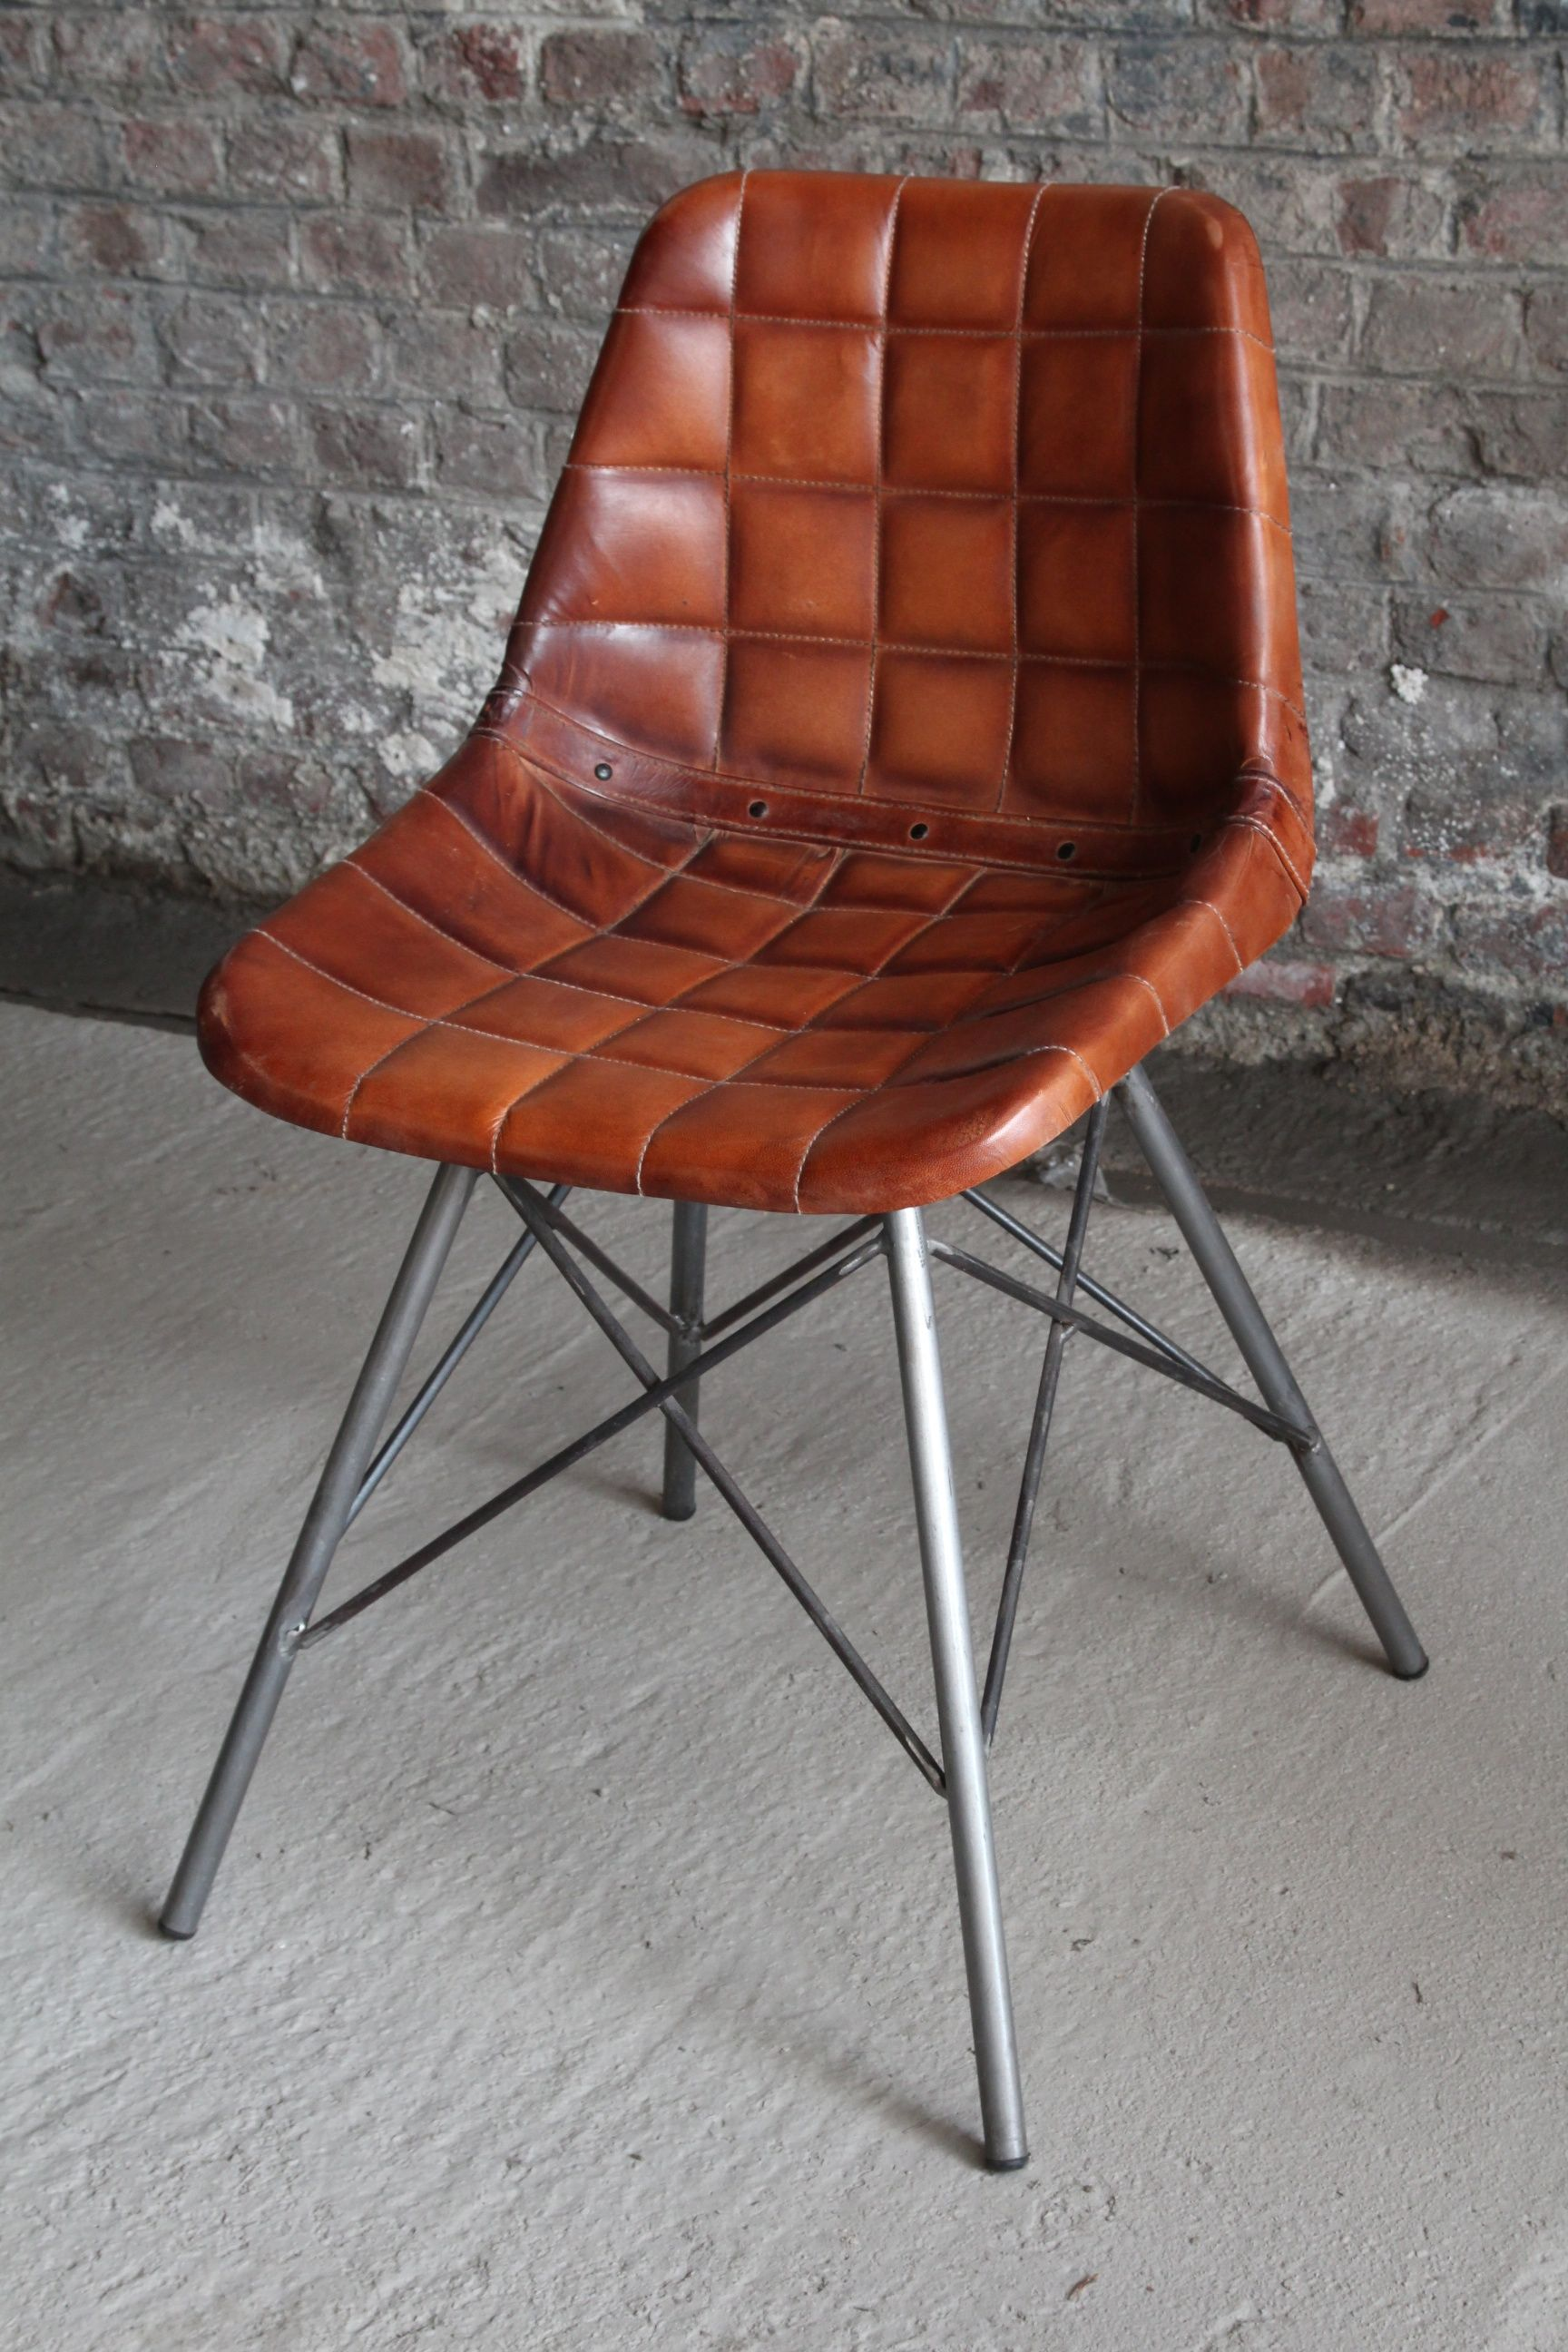 Attractive Industrial U0026 Vintage Furniture By Shop Our Embossed Leather Industrial Chair  Now.